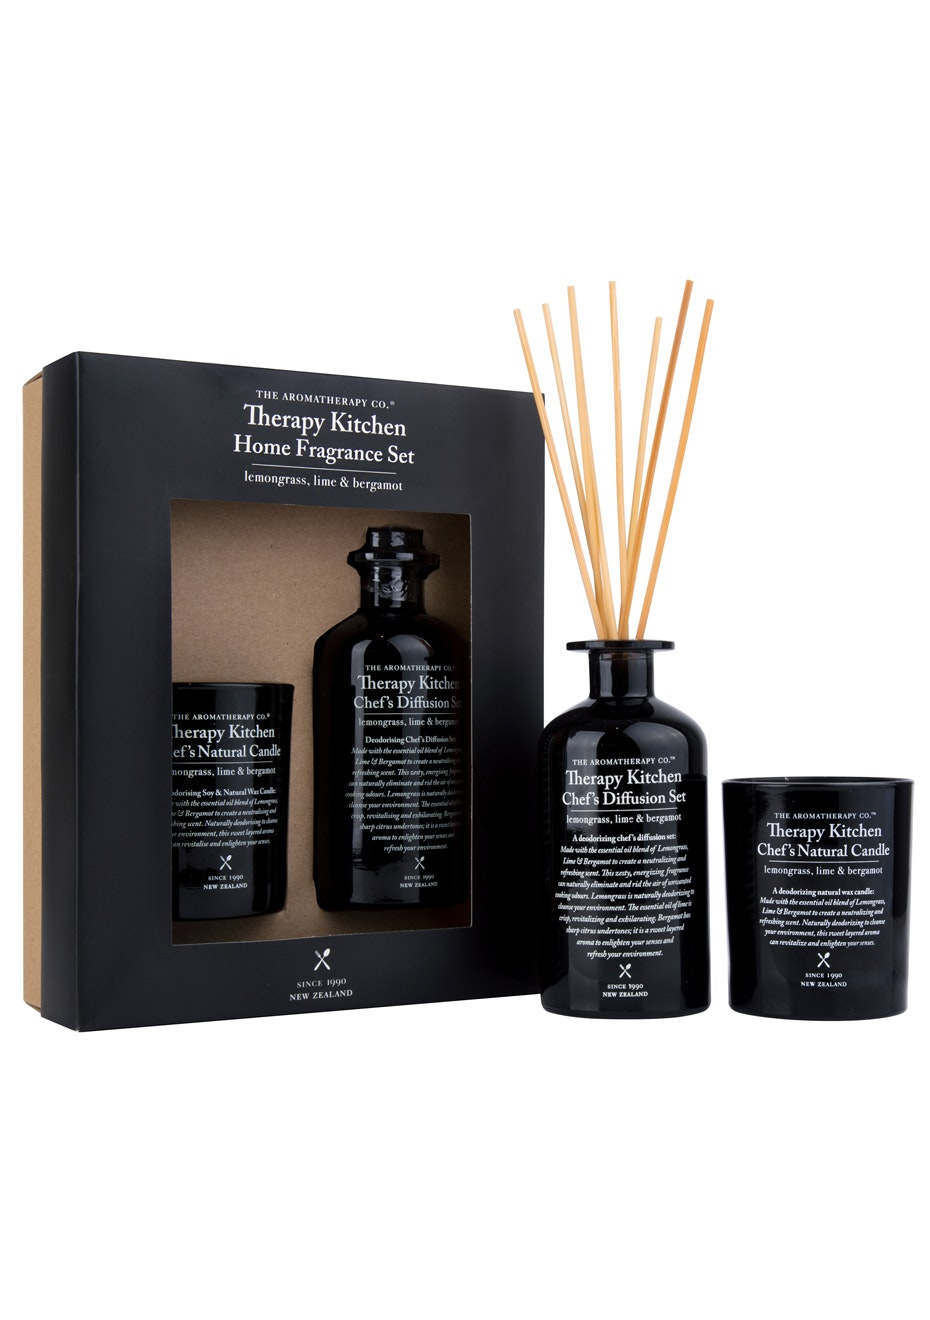 The Aromatherapy Co. Therapy Kitchen Gift Set - Diffuser & Candle - Lemongrass, Lime & Bergamot